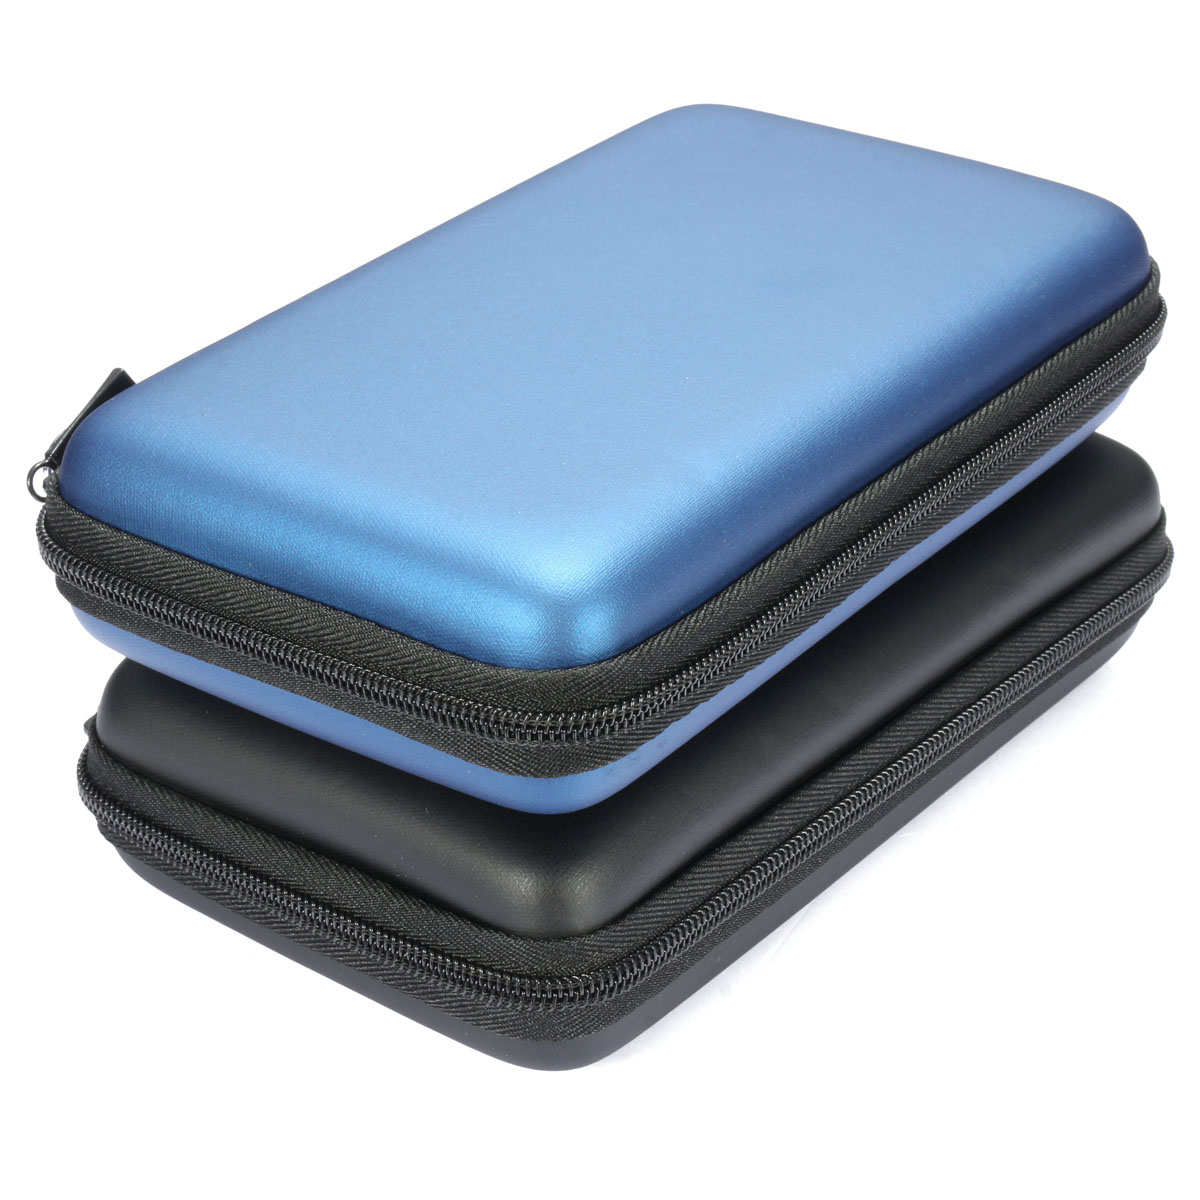 Hard Carry Protective Case Cover Skin Sleeve Bag Pouch For Nintendo 3DS XL